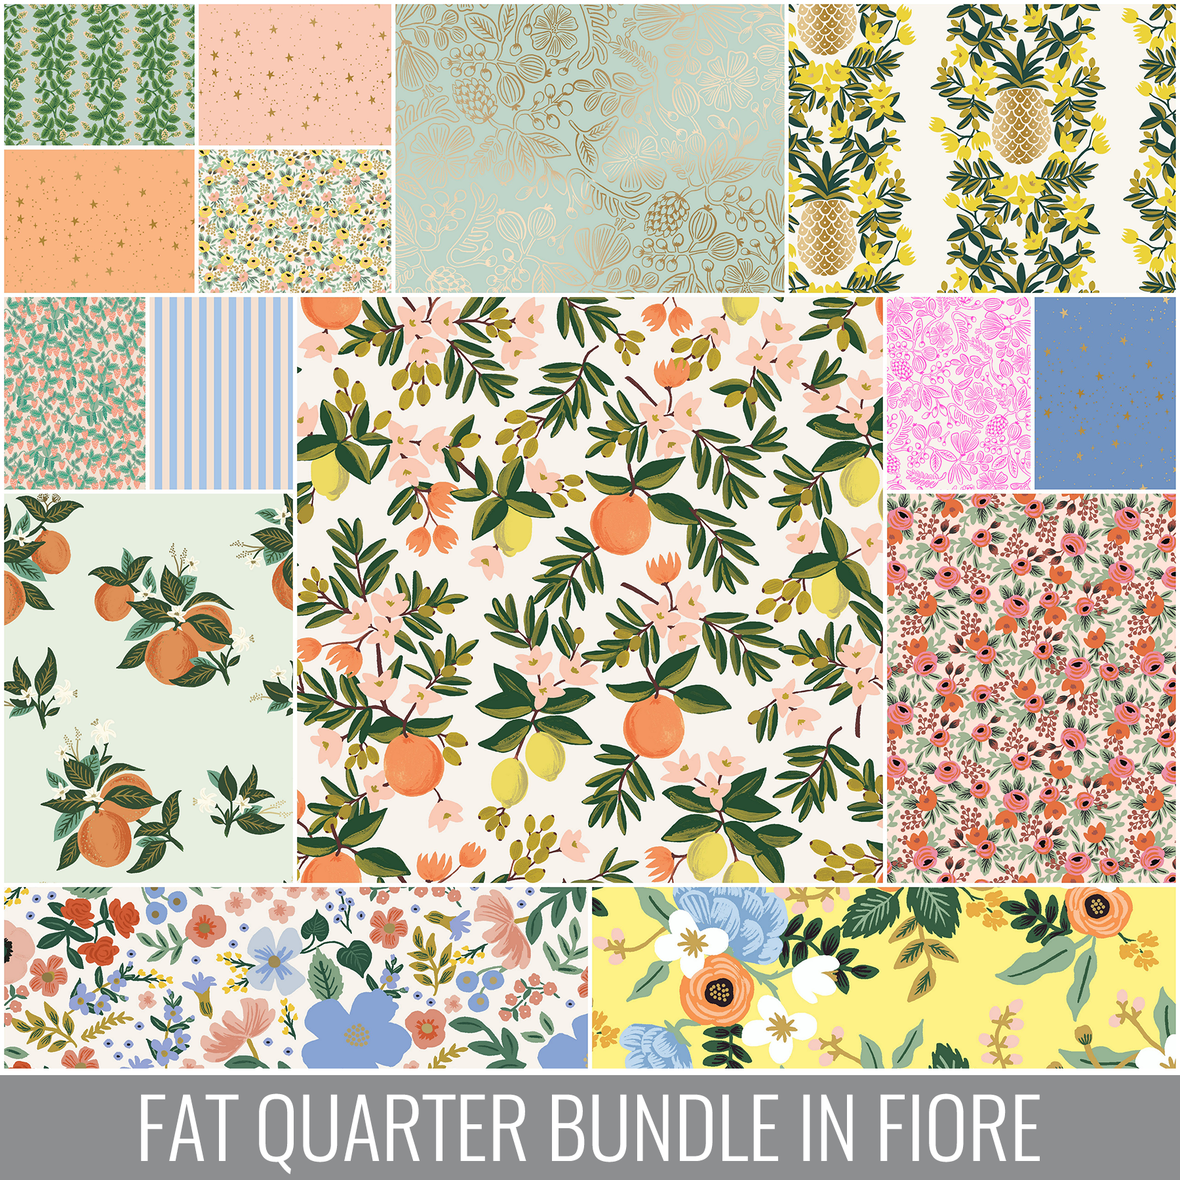 RIFLE PAPER CO PRIMAVERA FQ BUNDLE FIORE